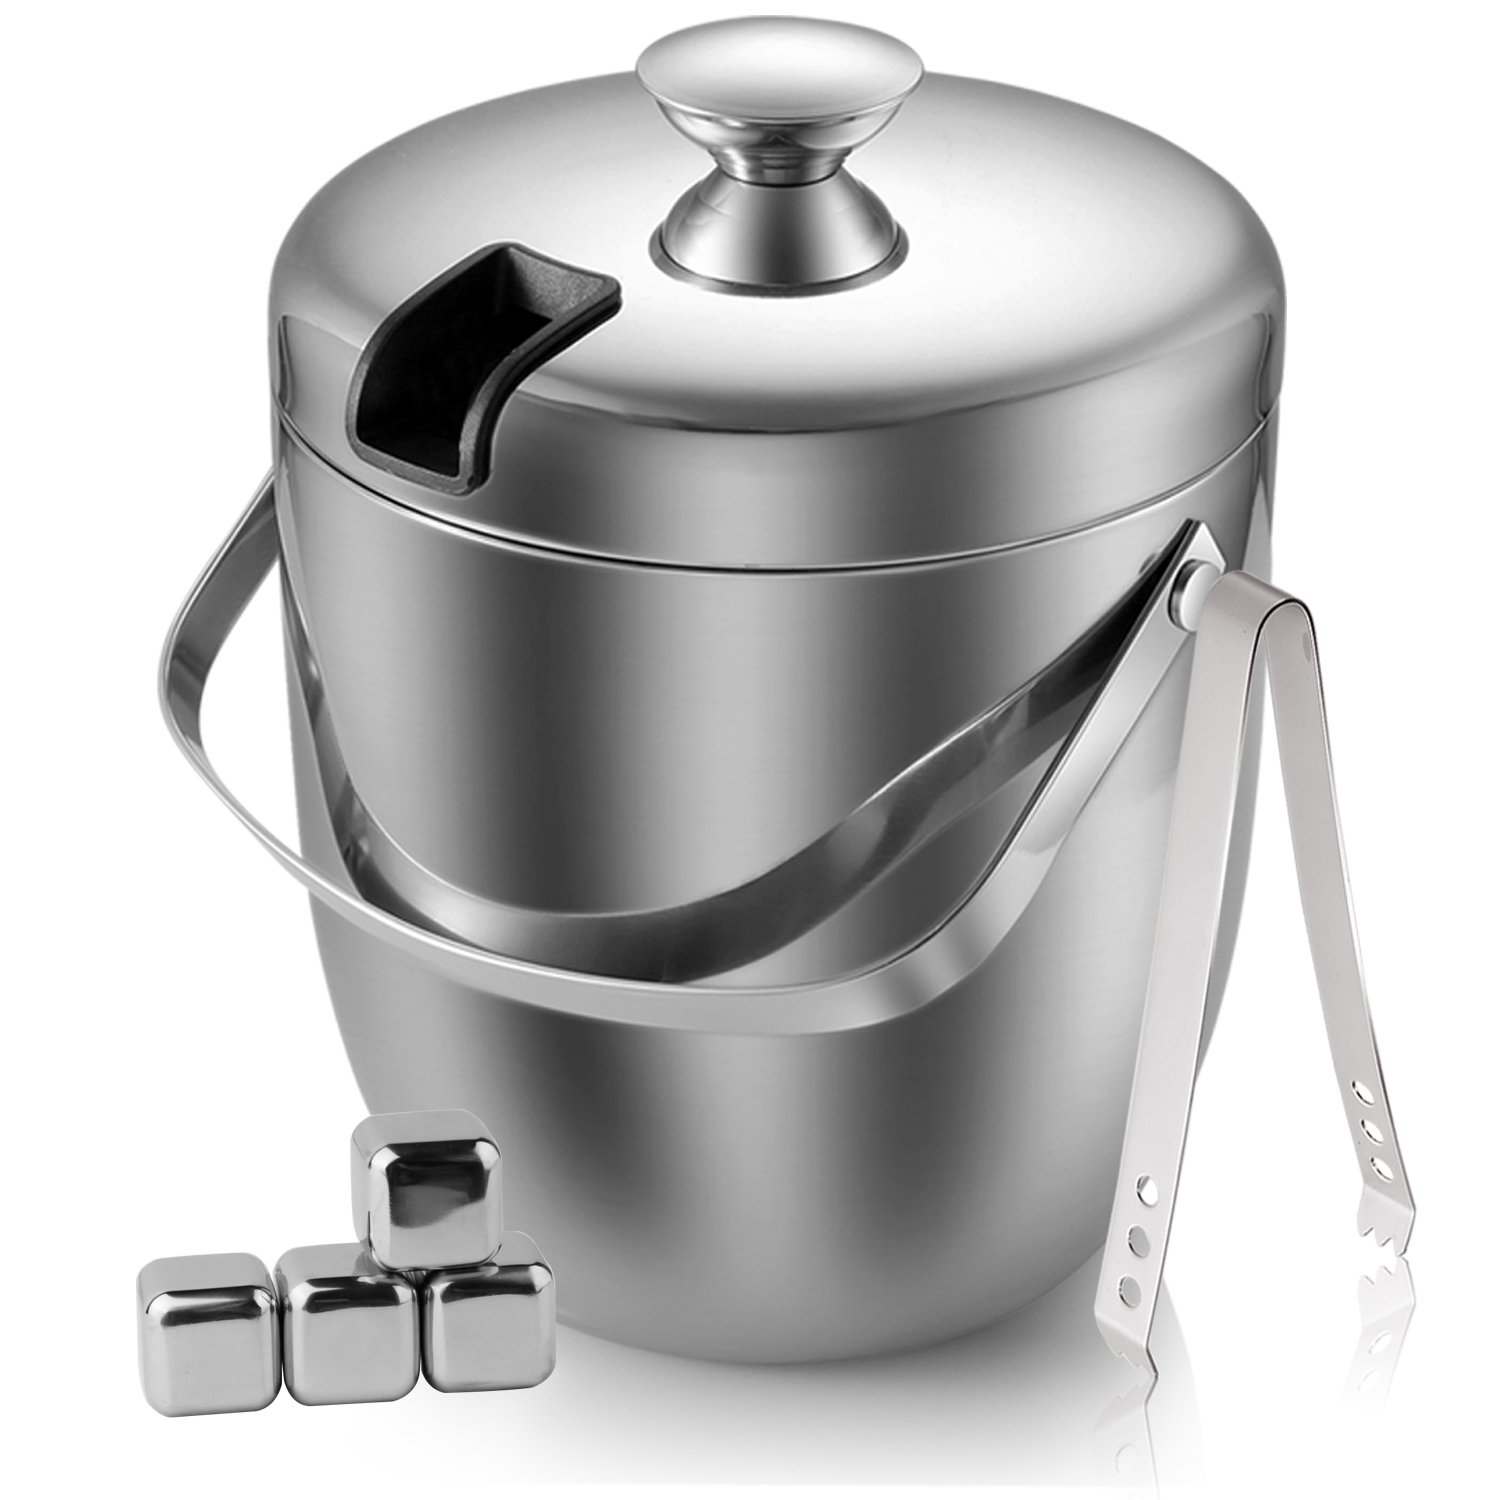 Fortune Candy Double Wall Stainless Steel Ice Bucket with Tong and Ice Cubes, 3 Litre/0.8 Gal HAZC075787